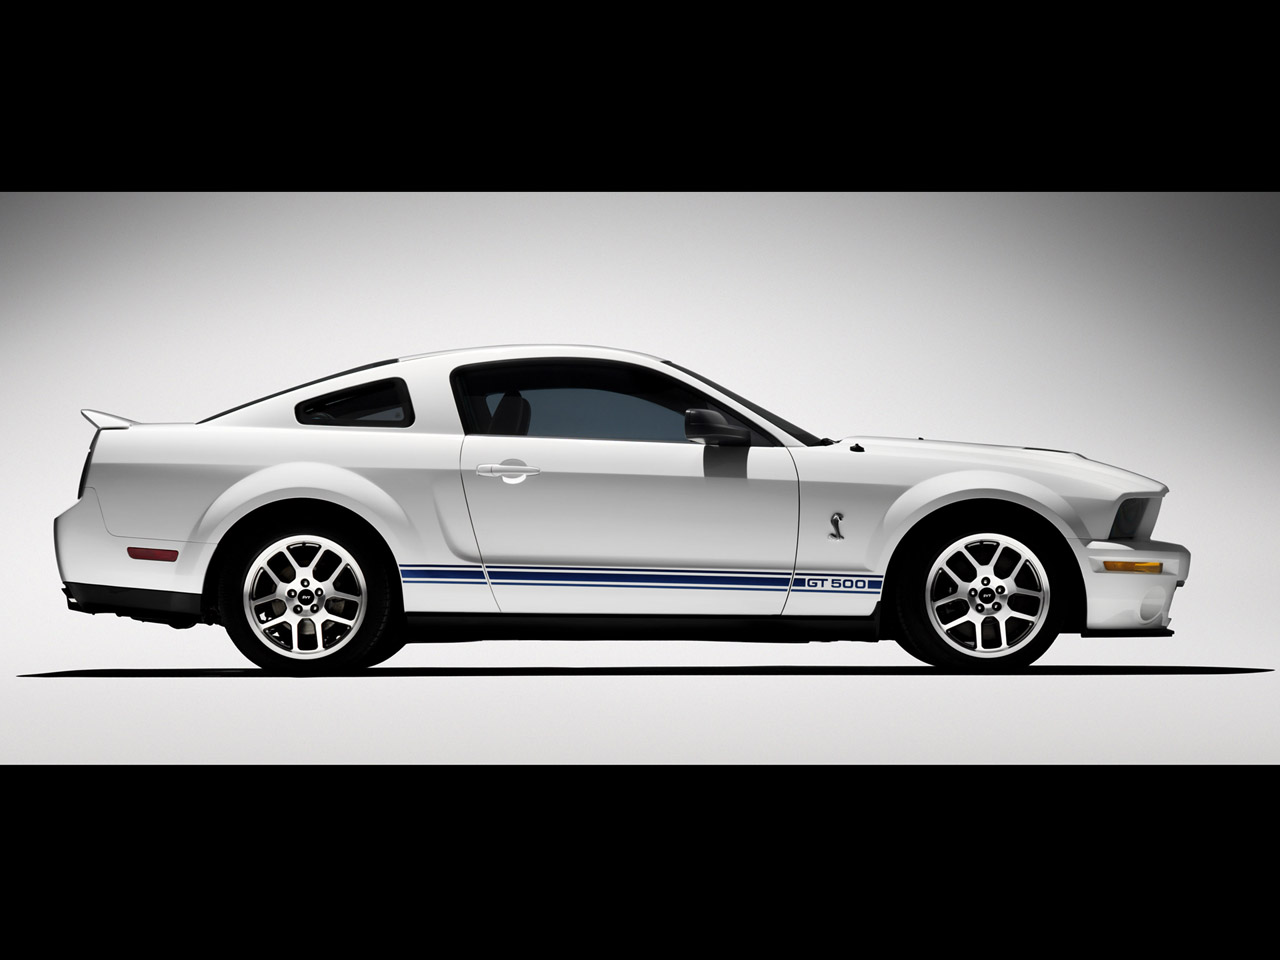 39 07 shelby gt 500. Black Bedroom Furniture Sets. Home Design Ideas